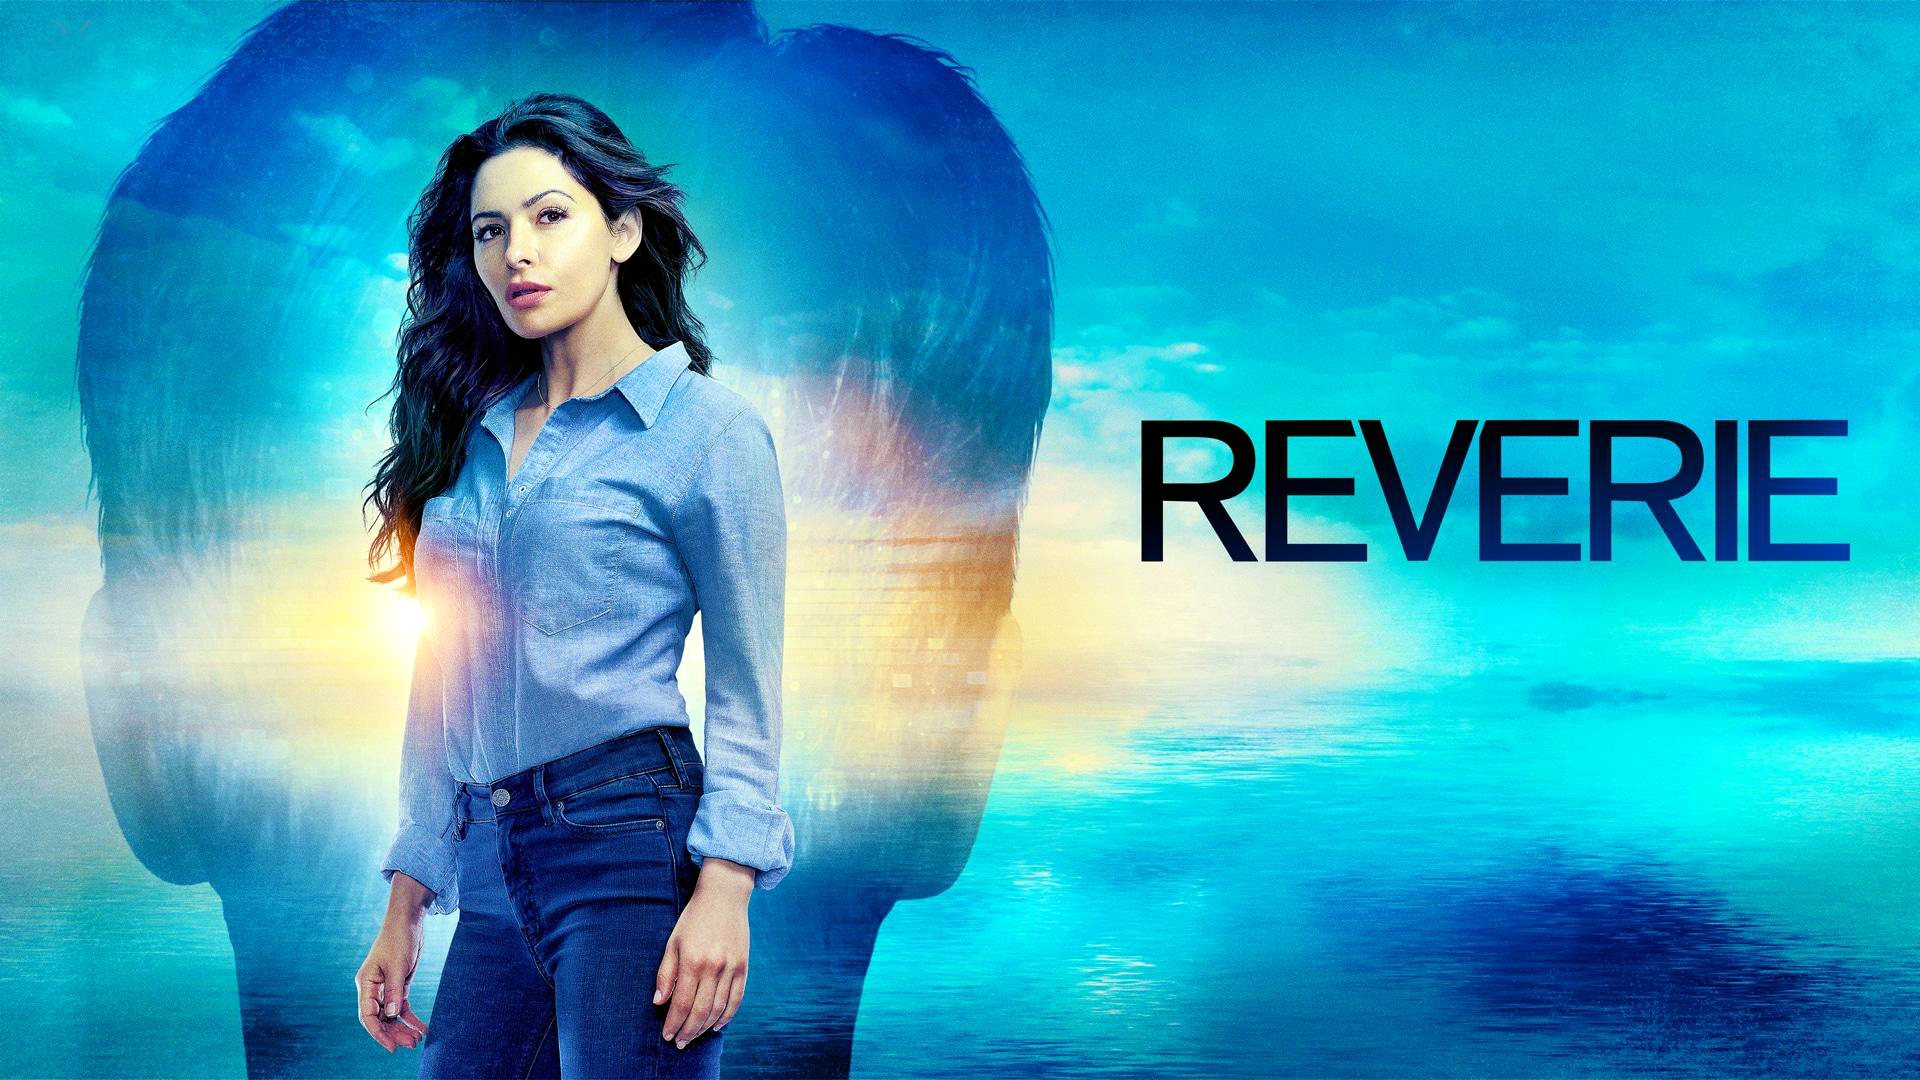 Reverie season 1 air rime